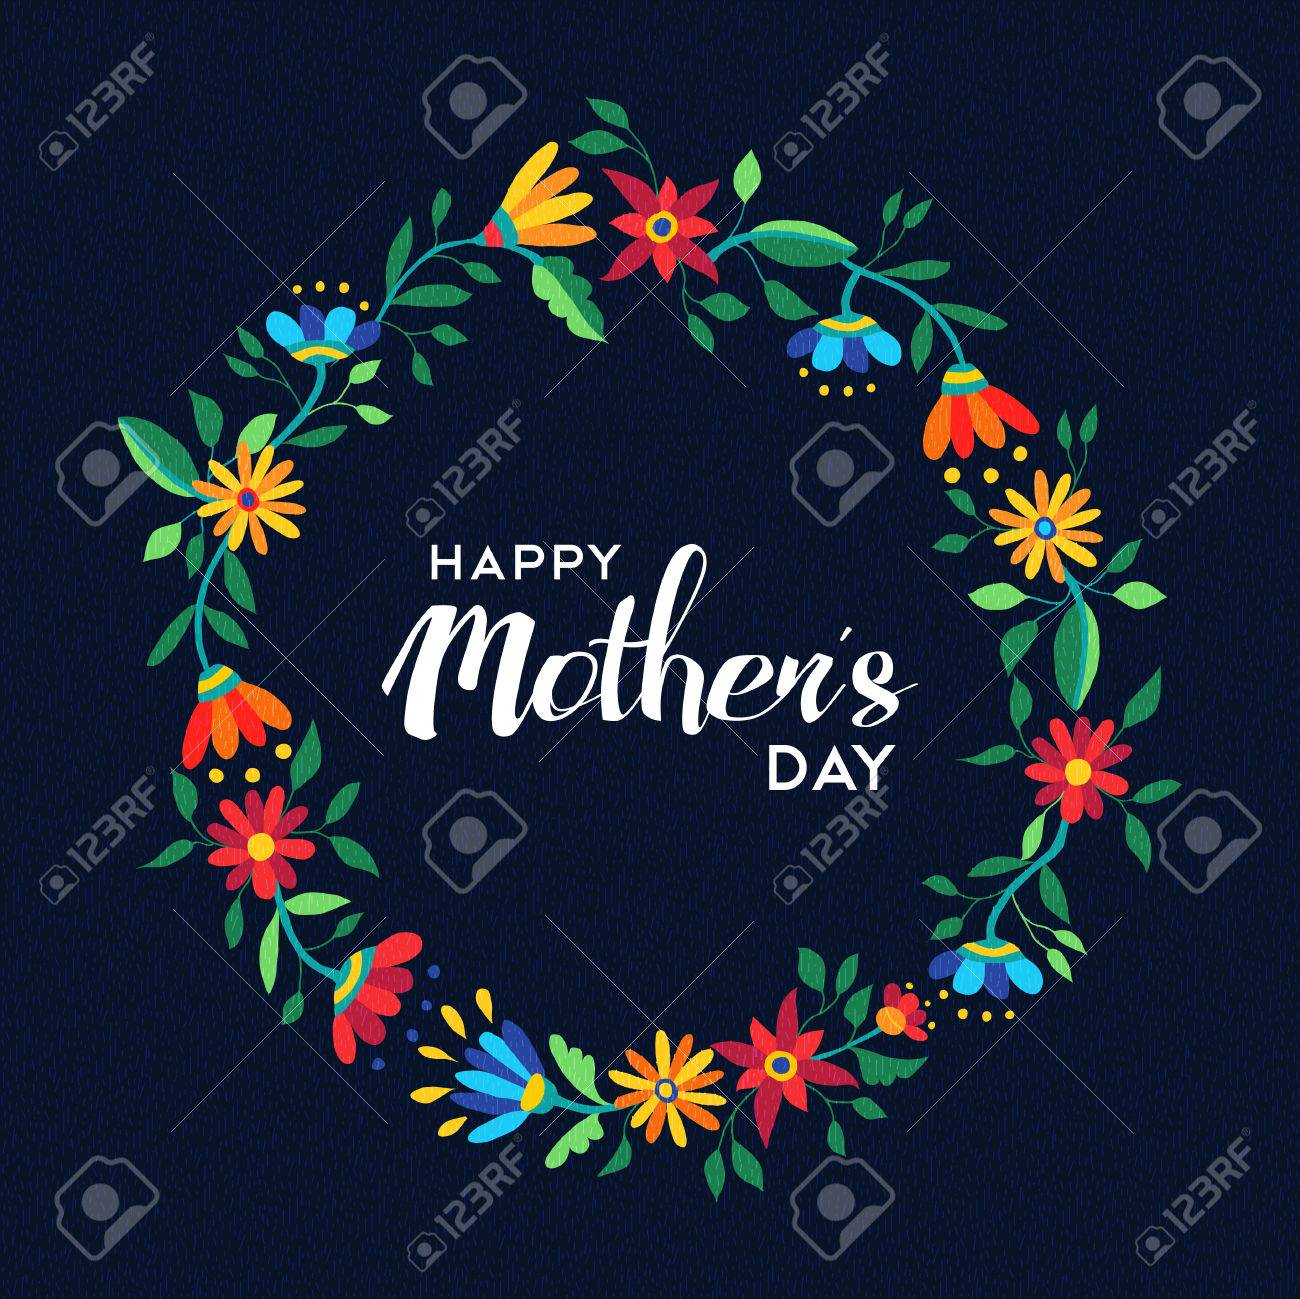 Happy mothers day quote design with cute flower wreath illustration